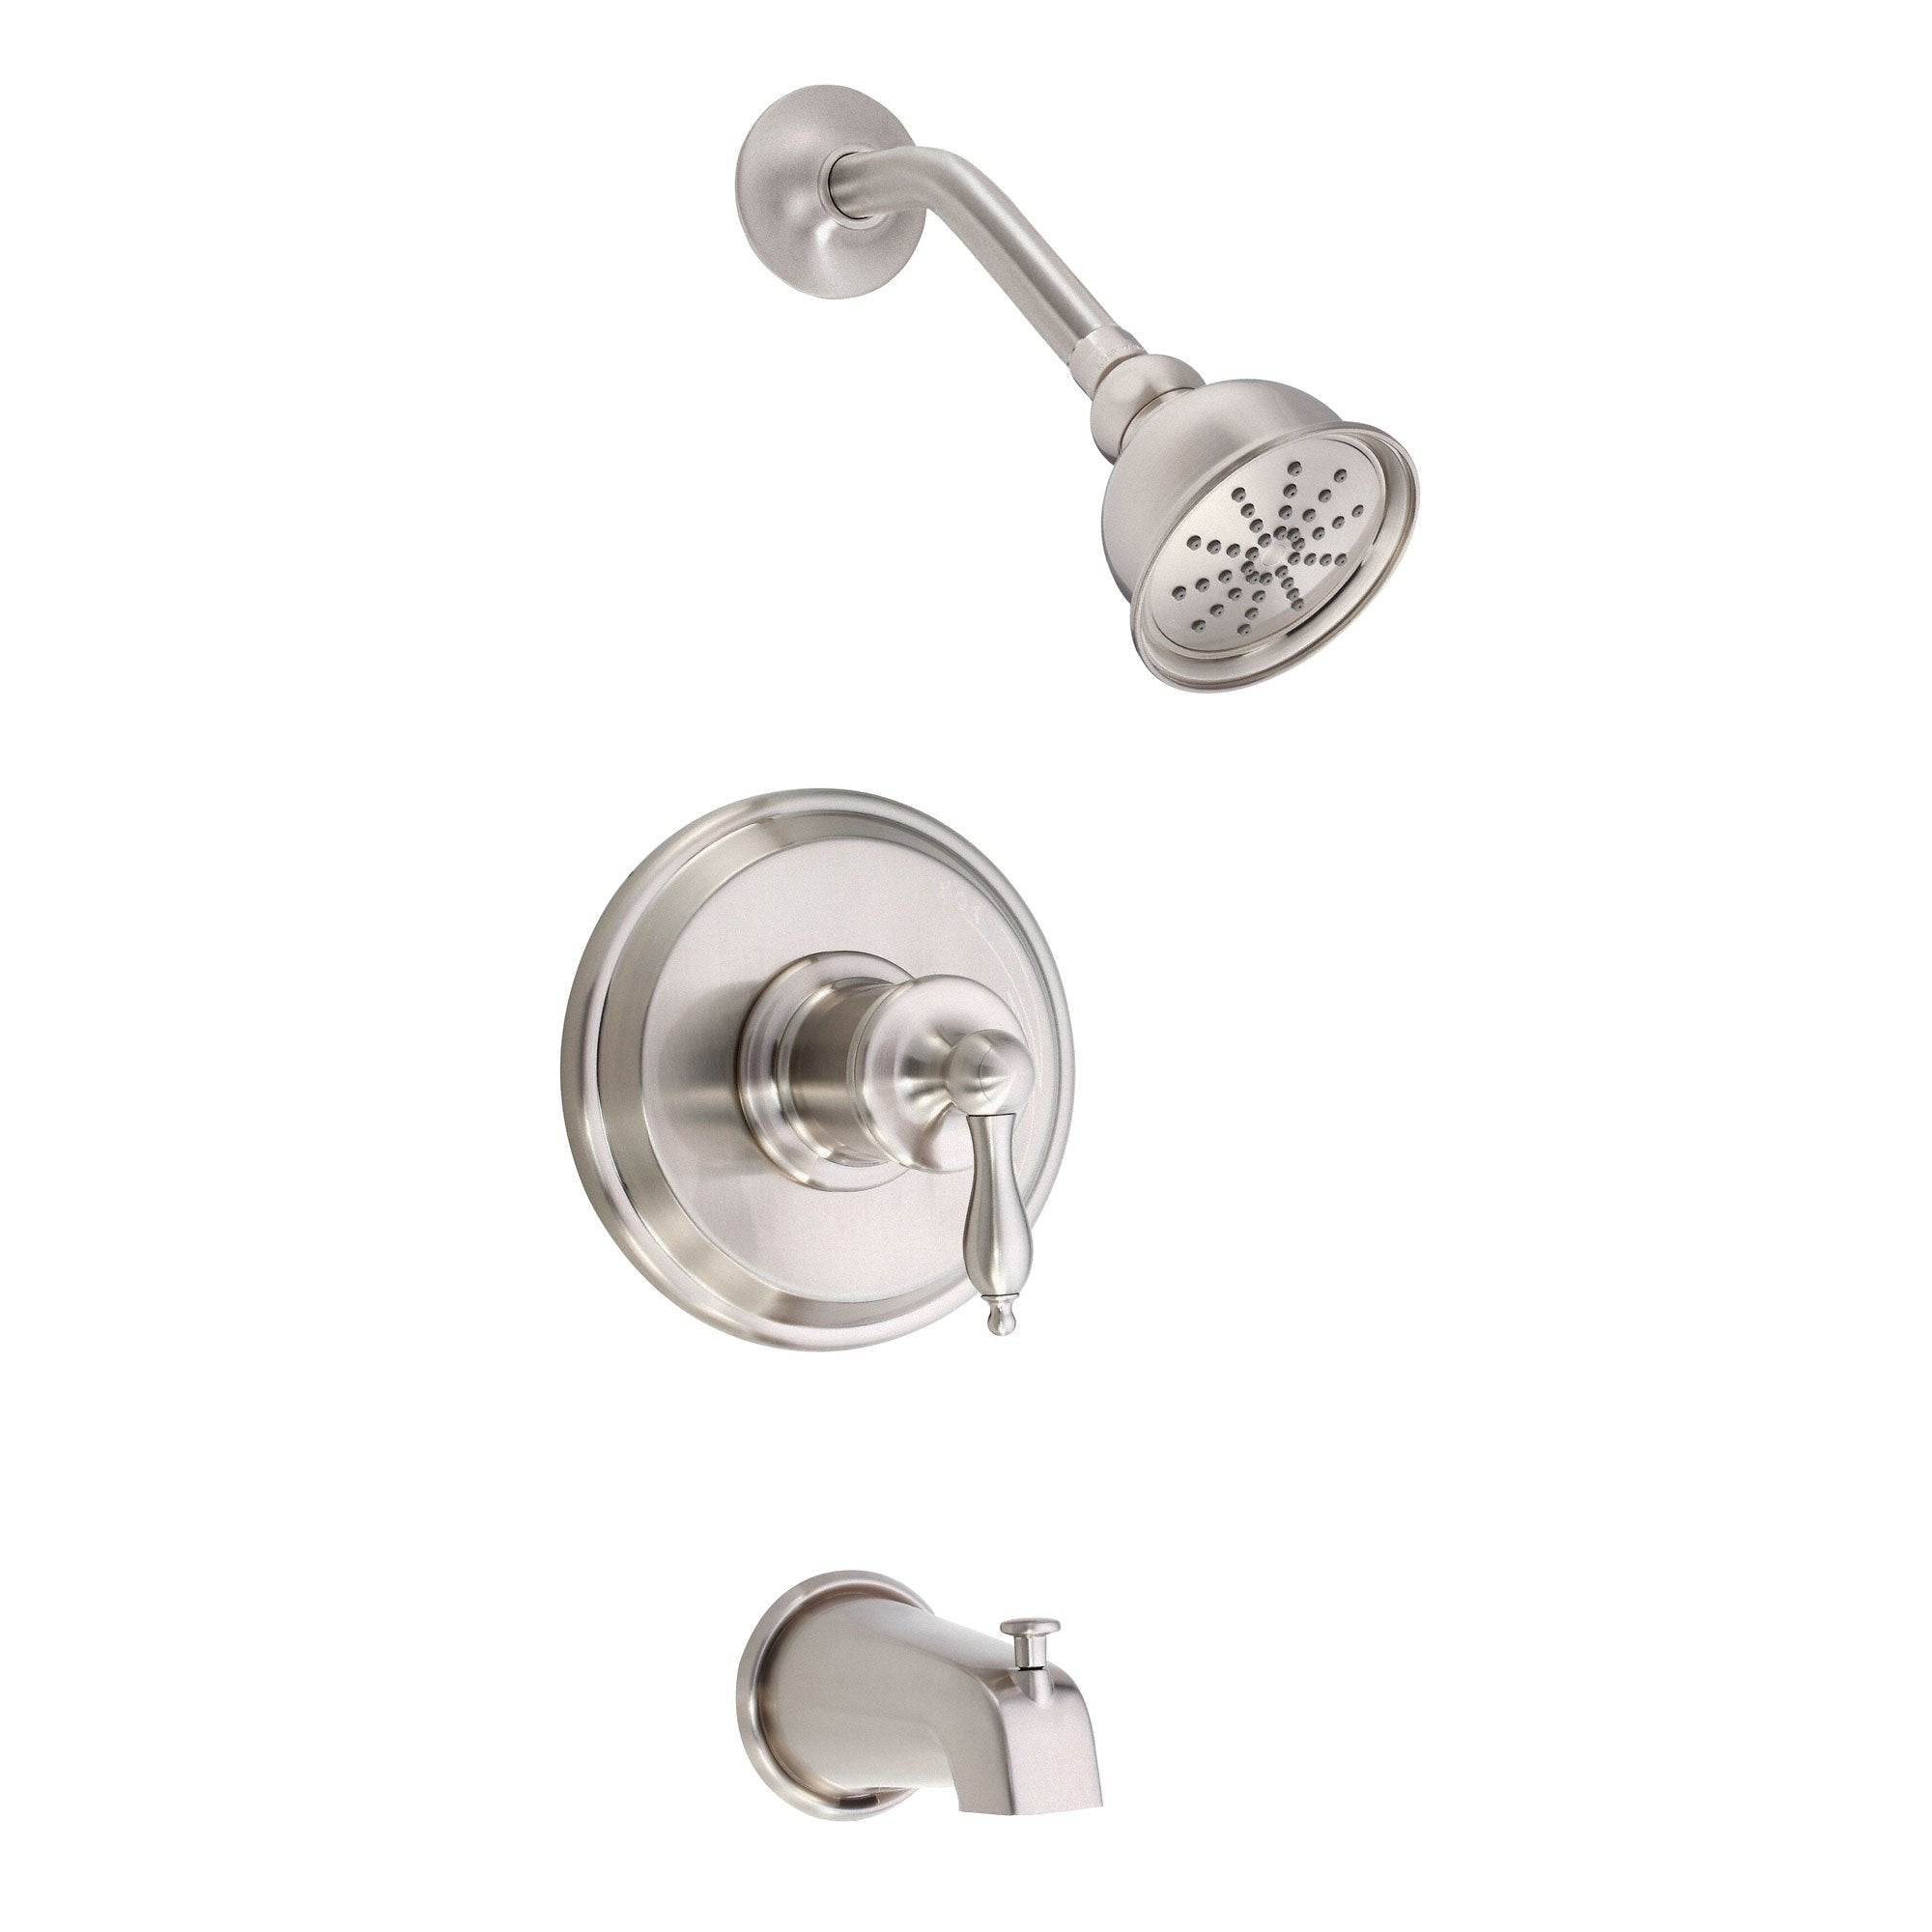 Danze Prince Brushed Nickel Single Handle Tub and Shower Combination Faucet INCLUDES Rough-in Valve